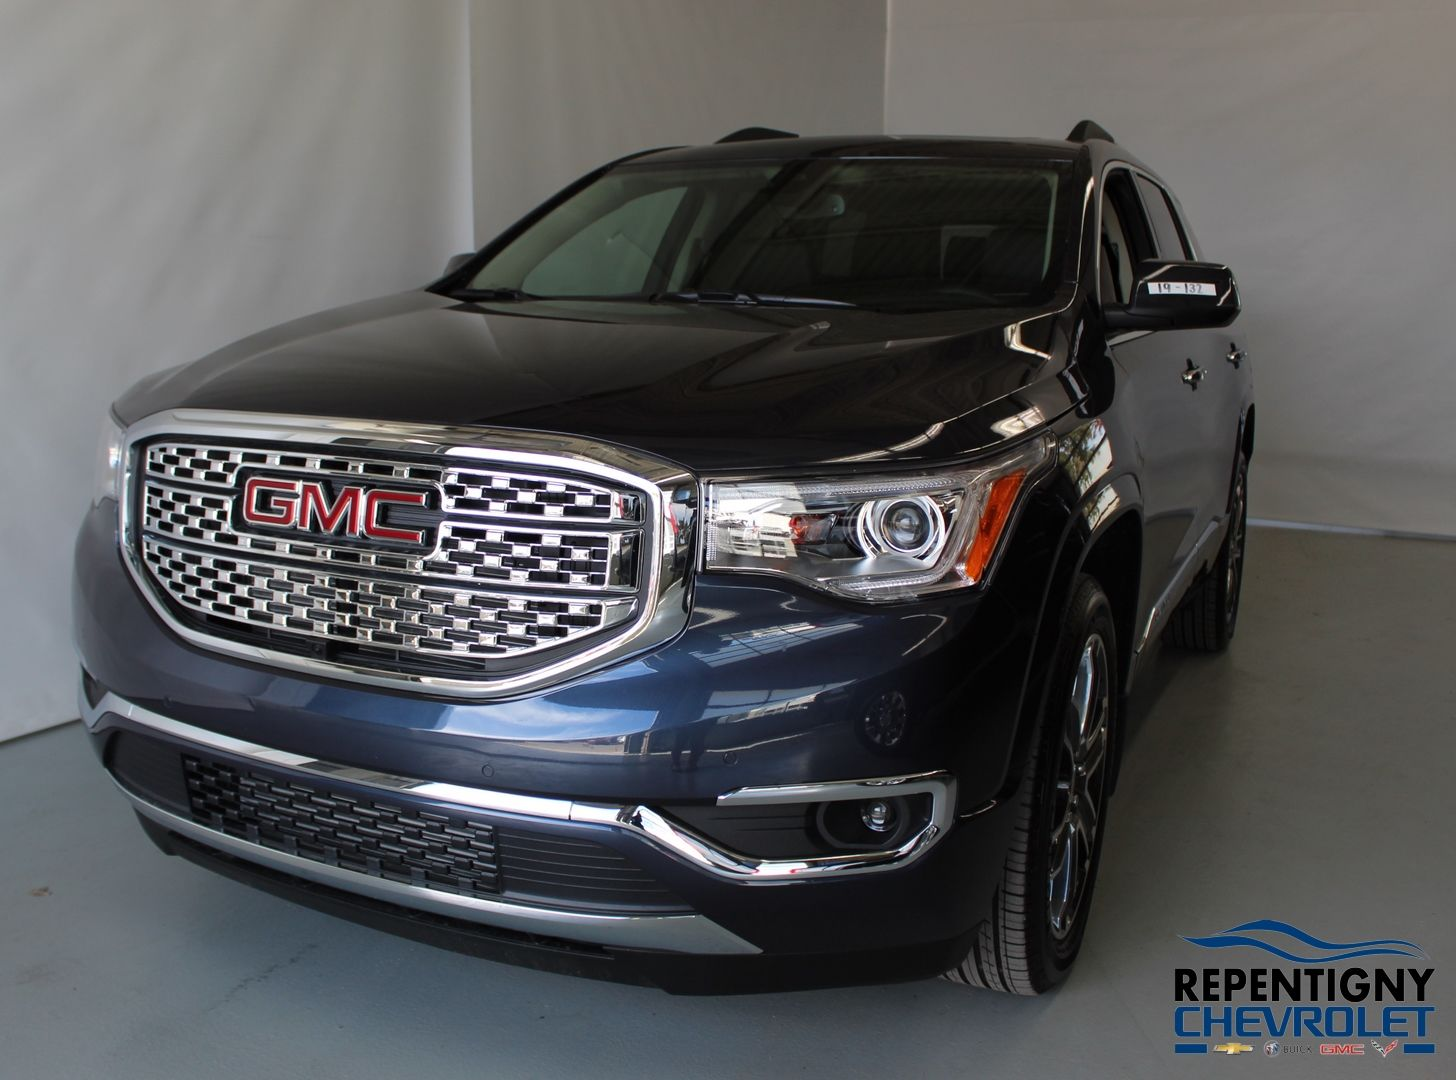 New 2019 GMC Acadia DENALI Blue Steel Metallic - $58295.0 ...